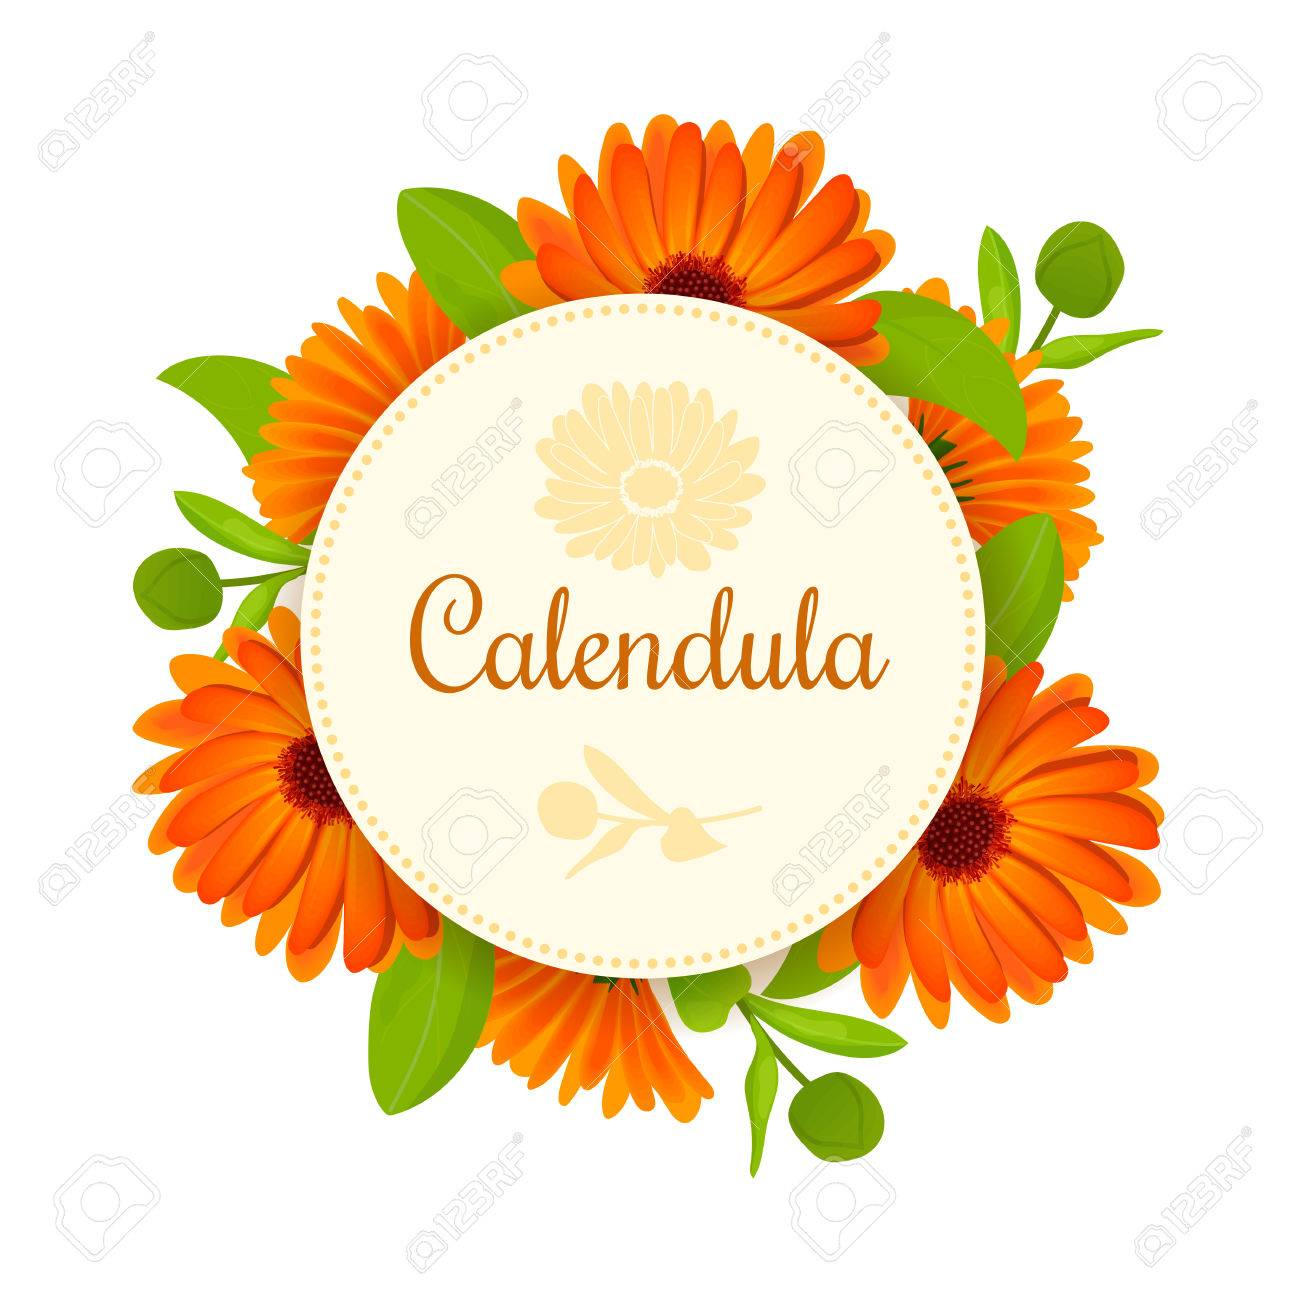 calendula flowers with leaves round badge with text royalty free